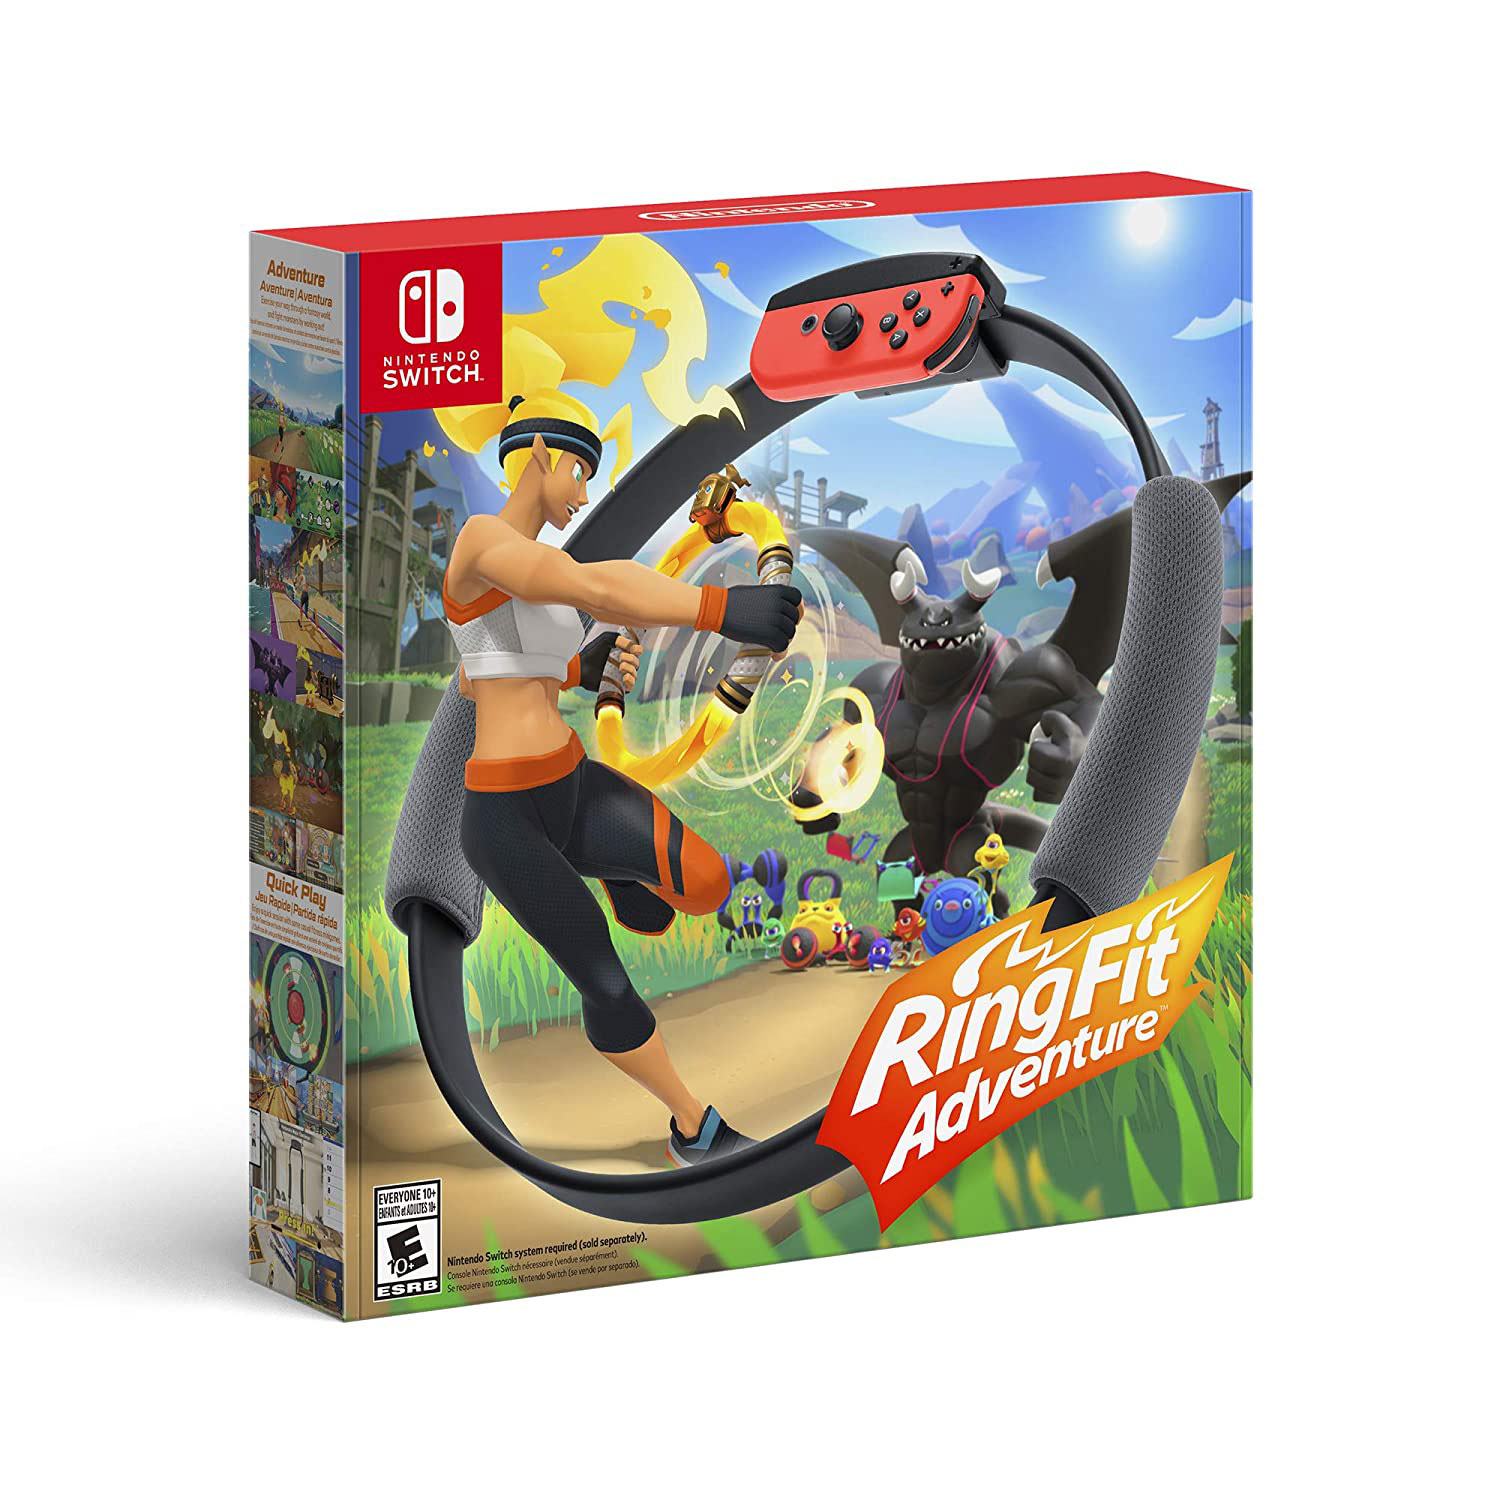 Best gifts for women or her - For the Energetic Gamer: Nintendo Ring Fit Adventure